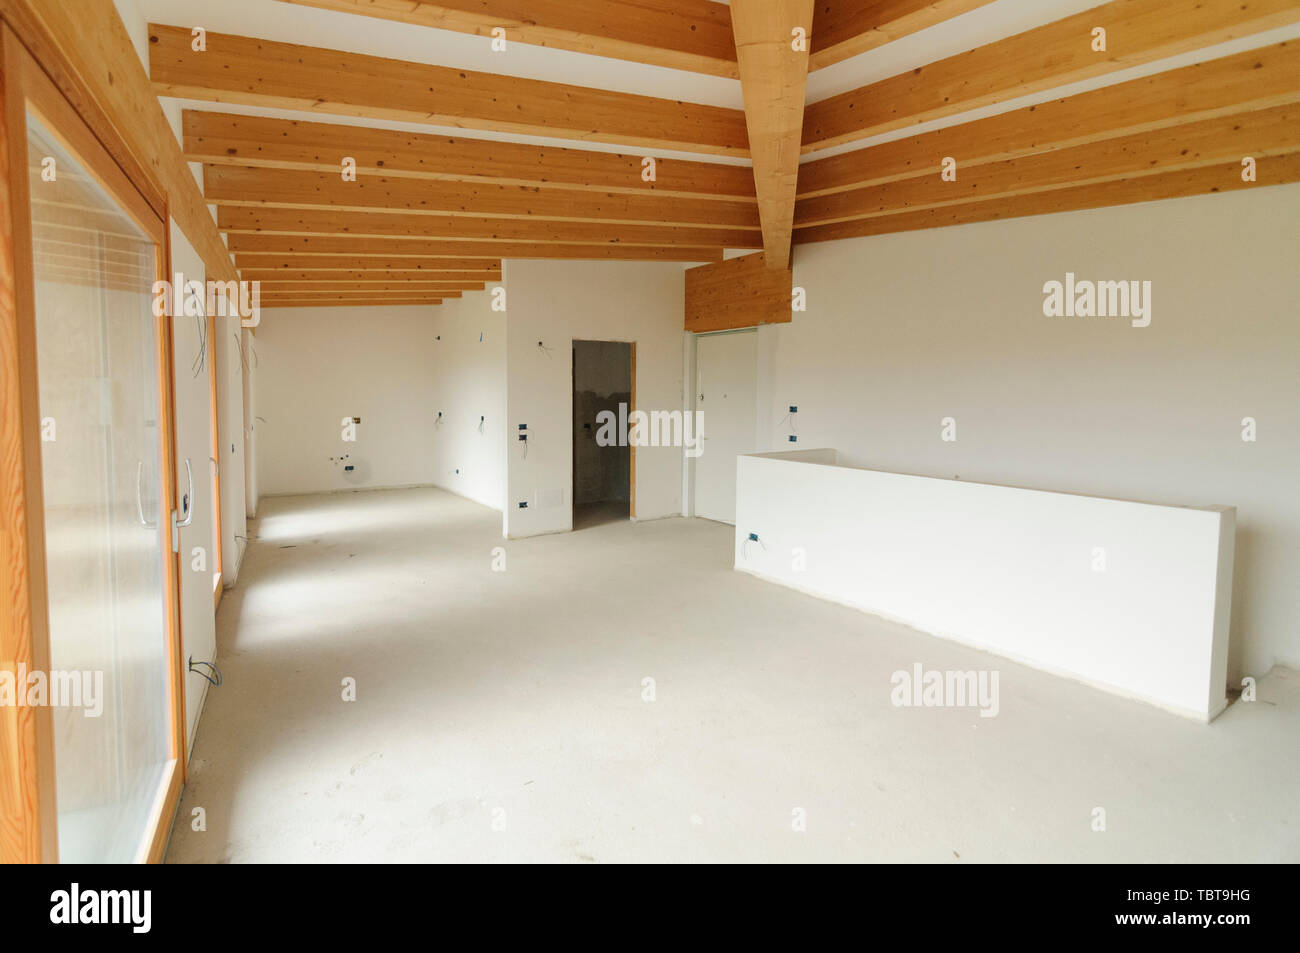 Building site or home renovation in progress: empty open space with large windows and exposed wooden beams Stock Photo